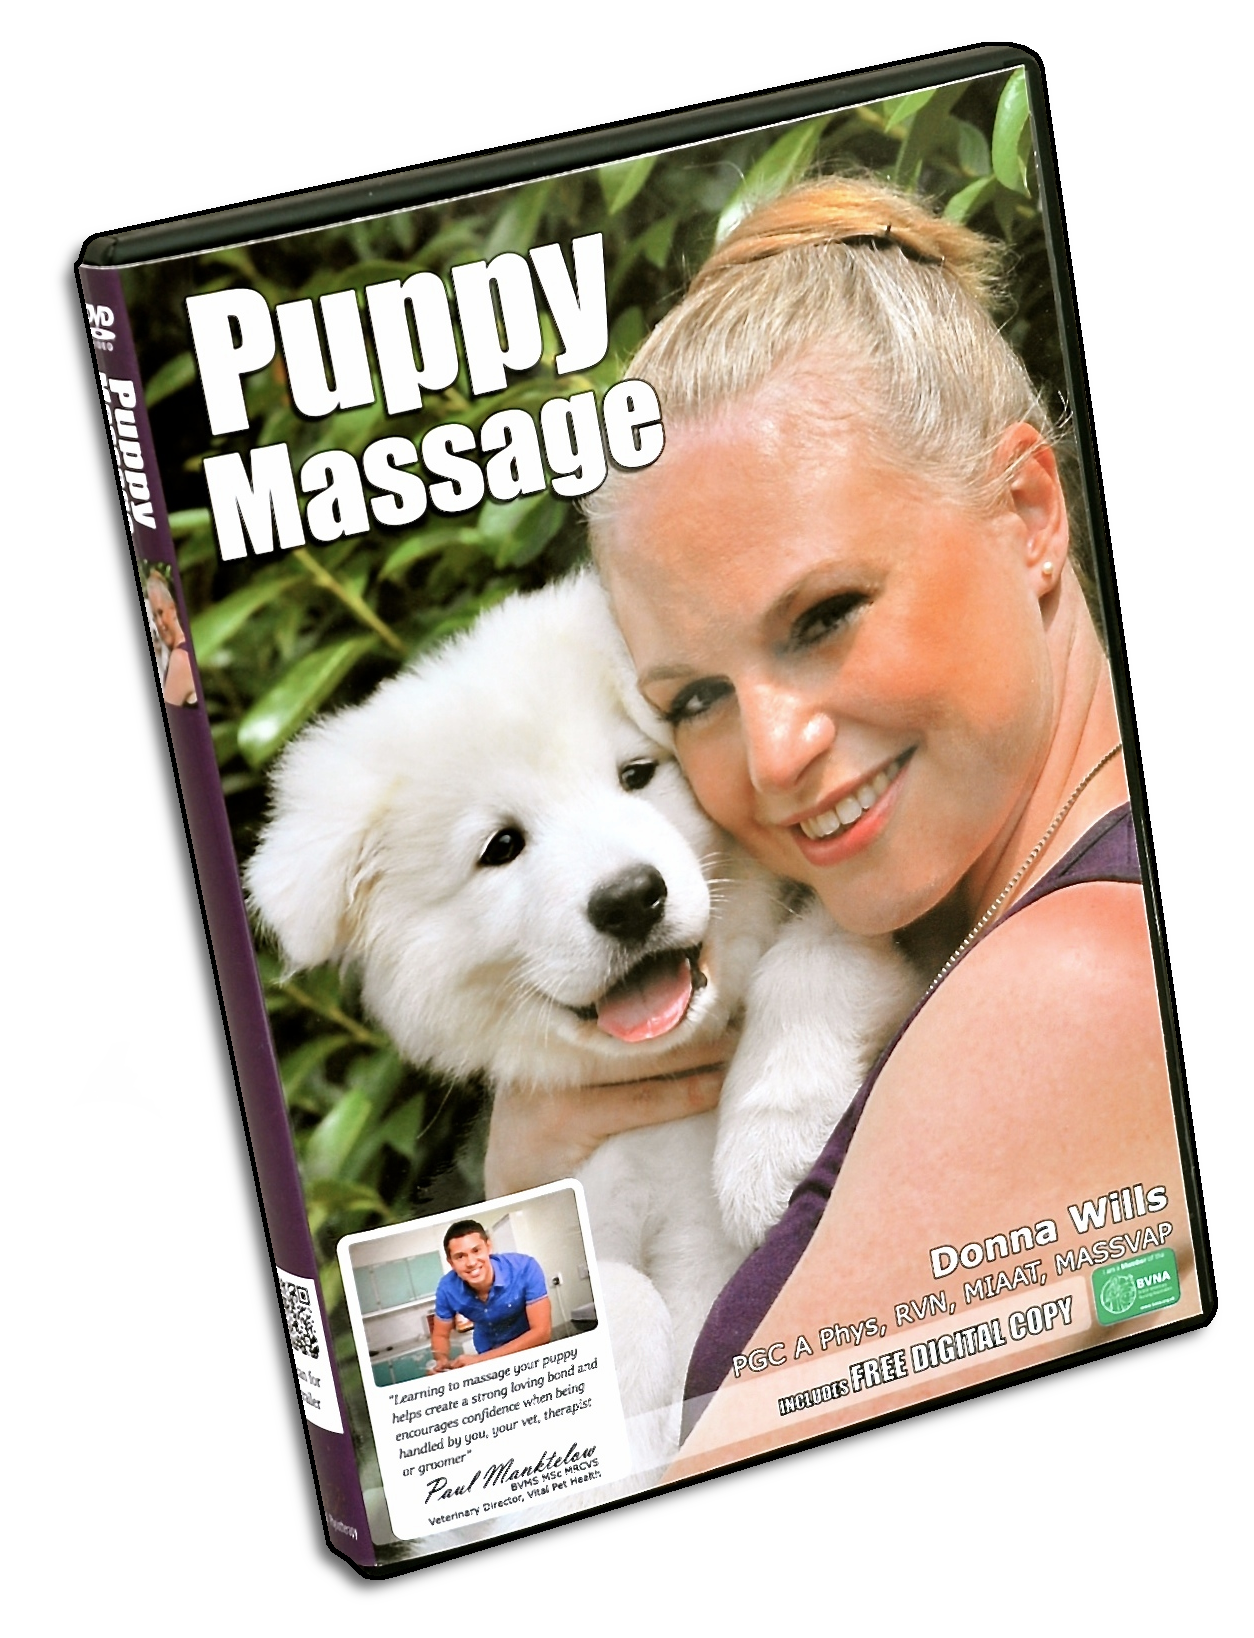 Puppy Massage DVD - First Stockists